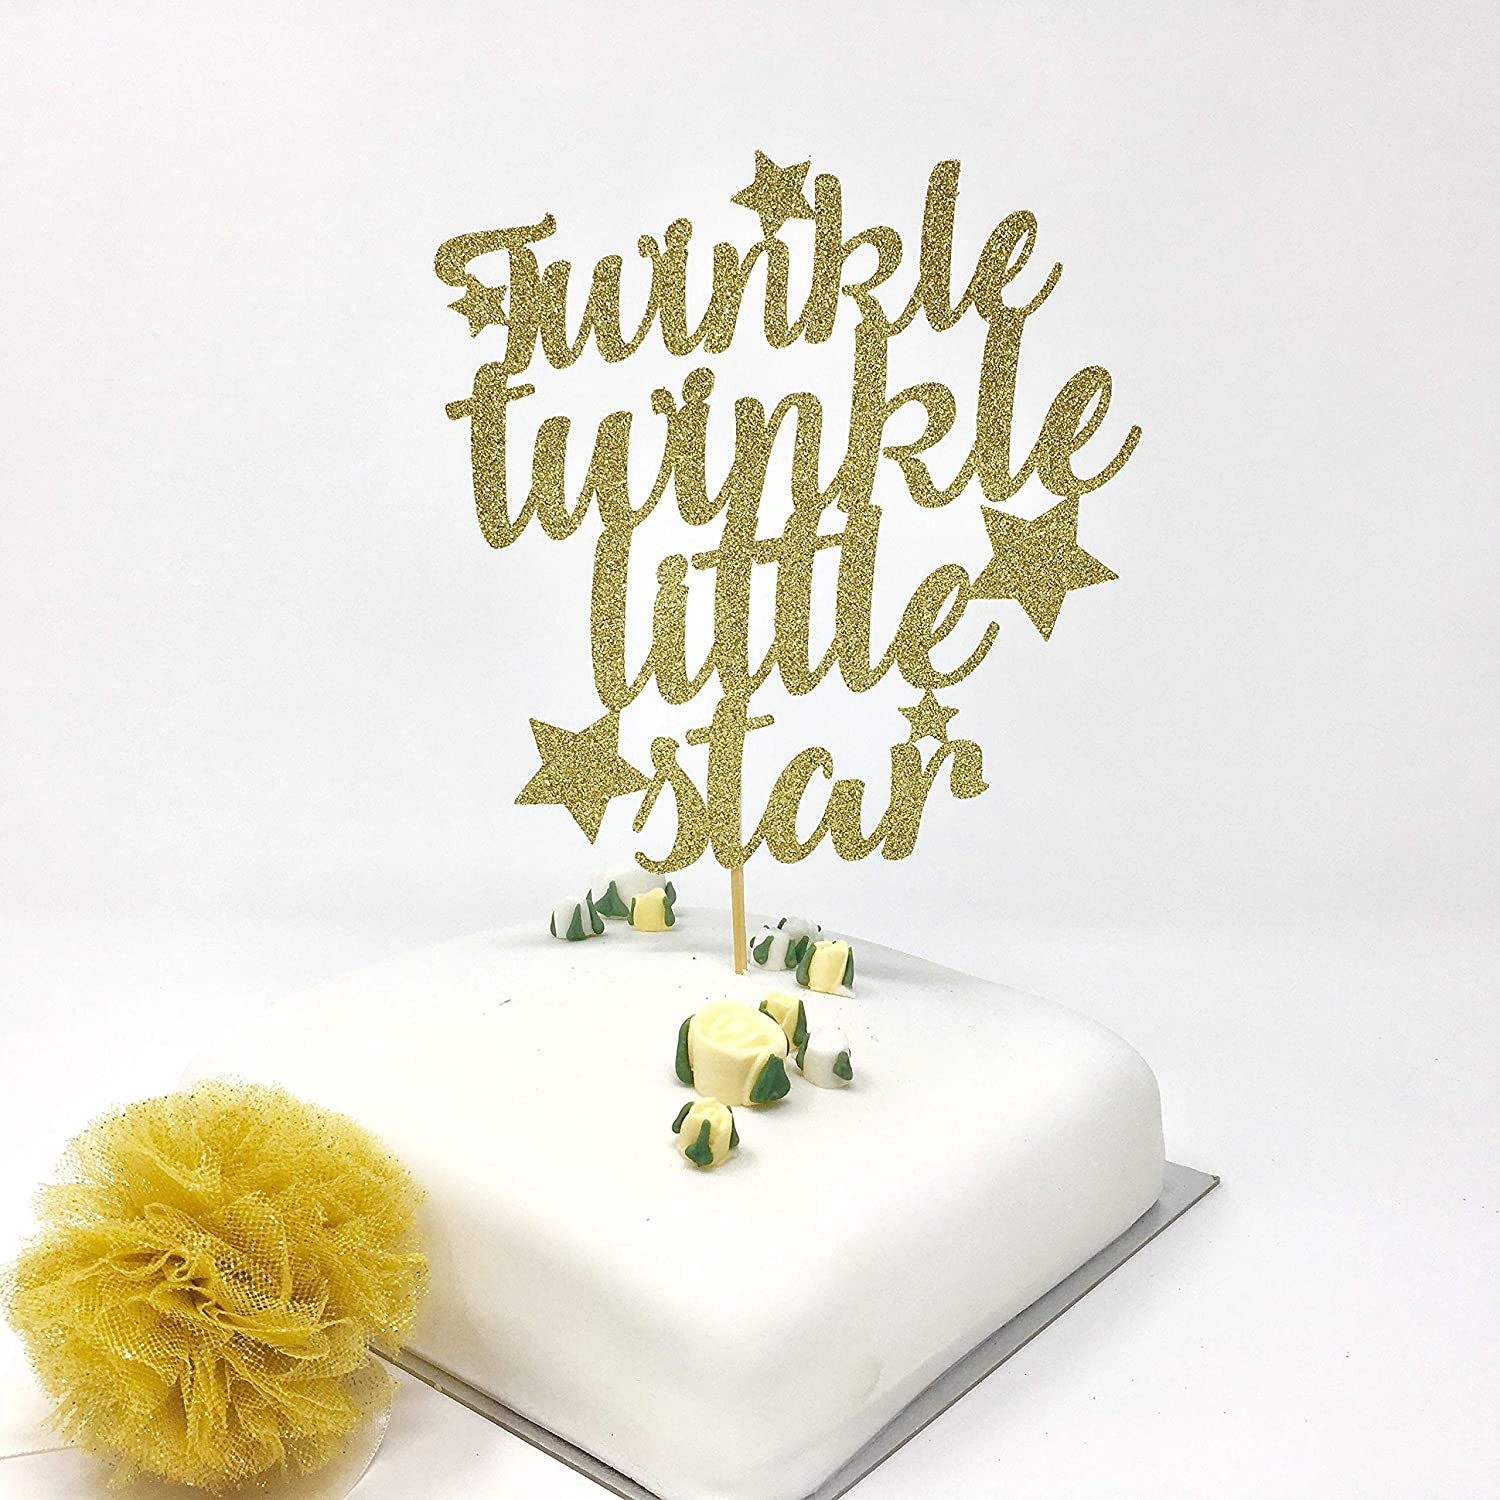 Twinkle twinkle little star cake topper. Baby shower cake idea. Birthday cake decor. 1st birthday, first party cake. Script party cake.